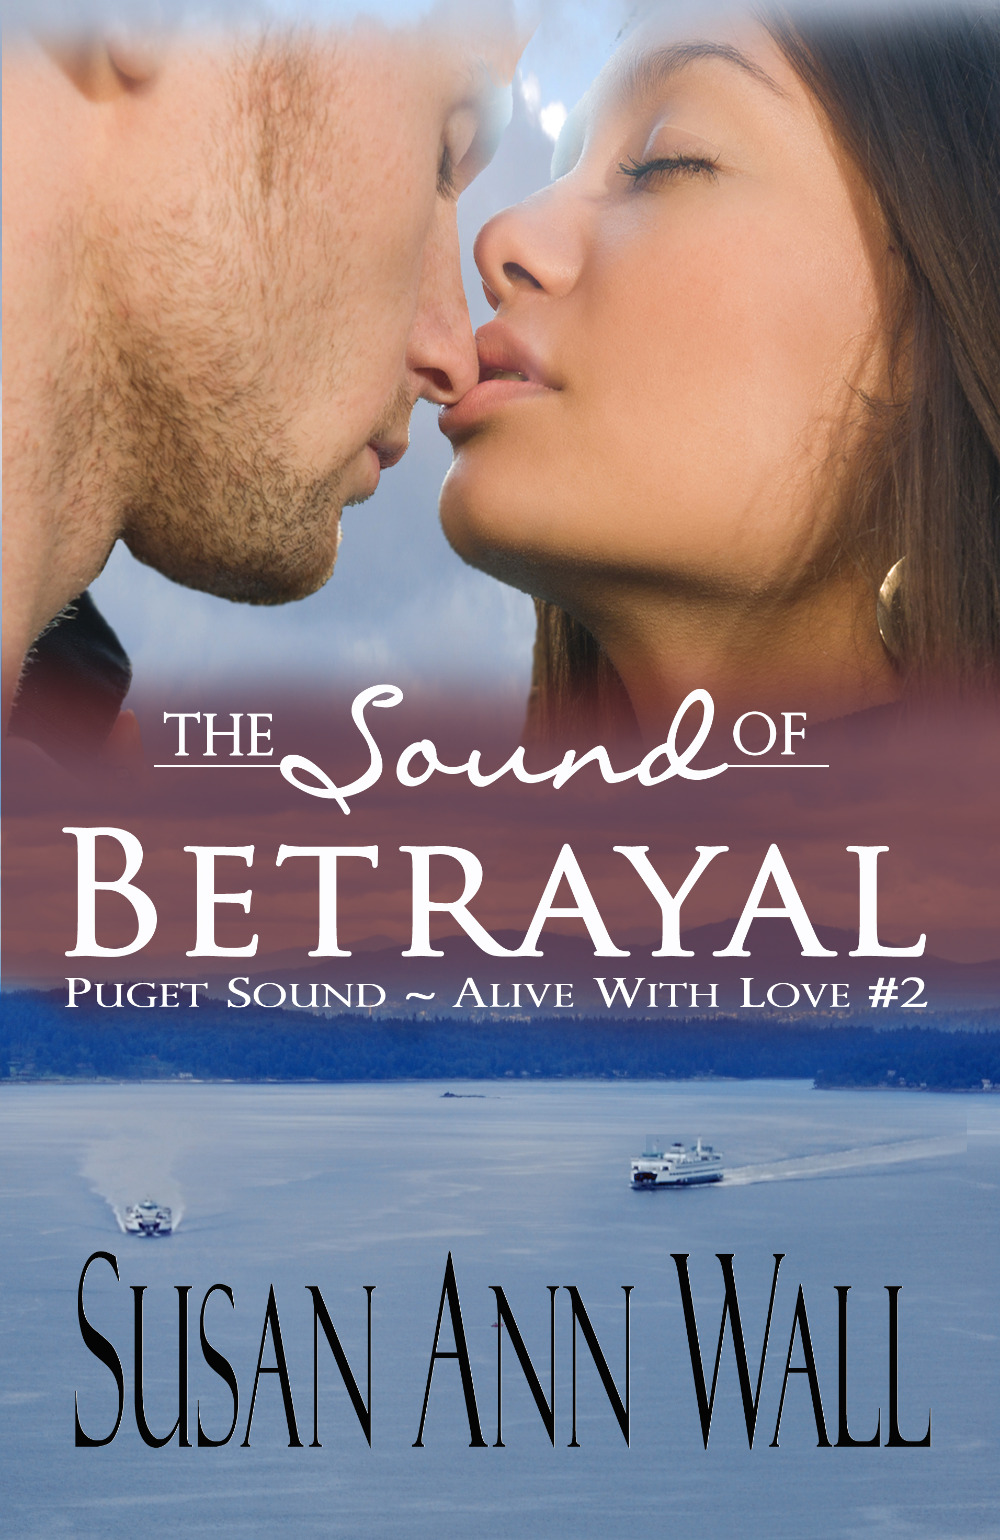 The Sound of Betrayal (Puget Sound ~ Alive With Love #2)